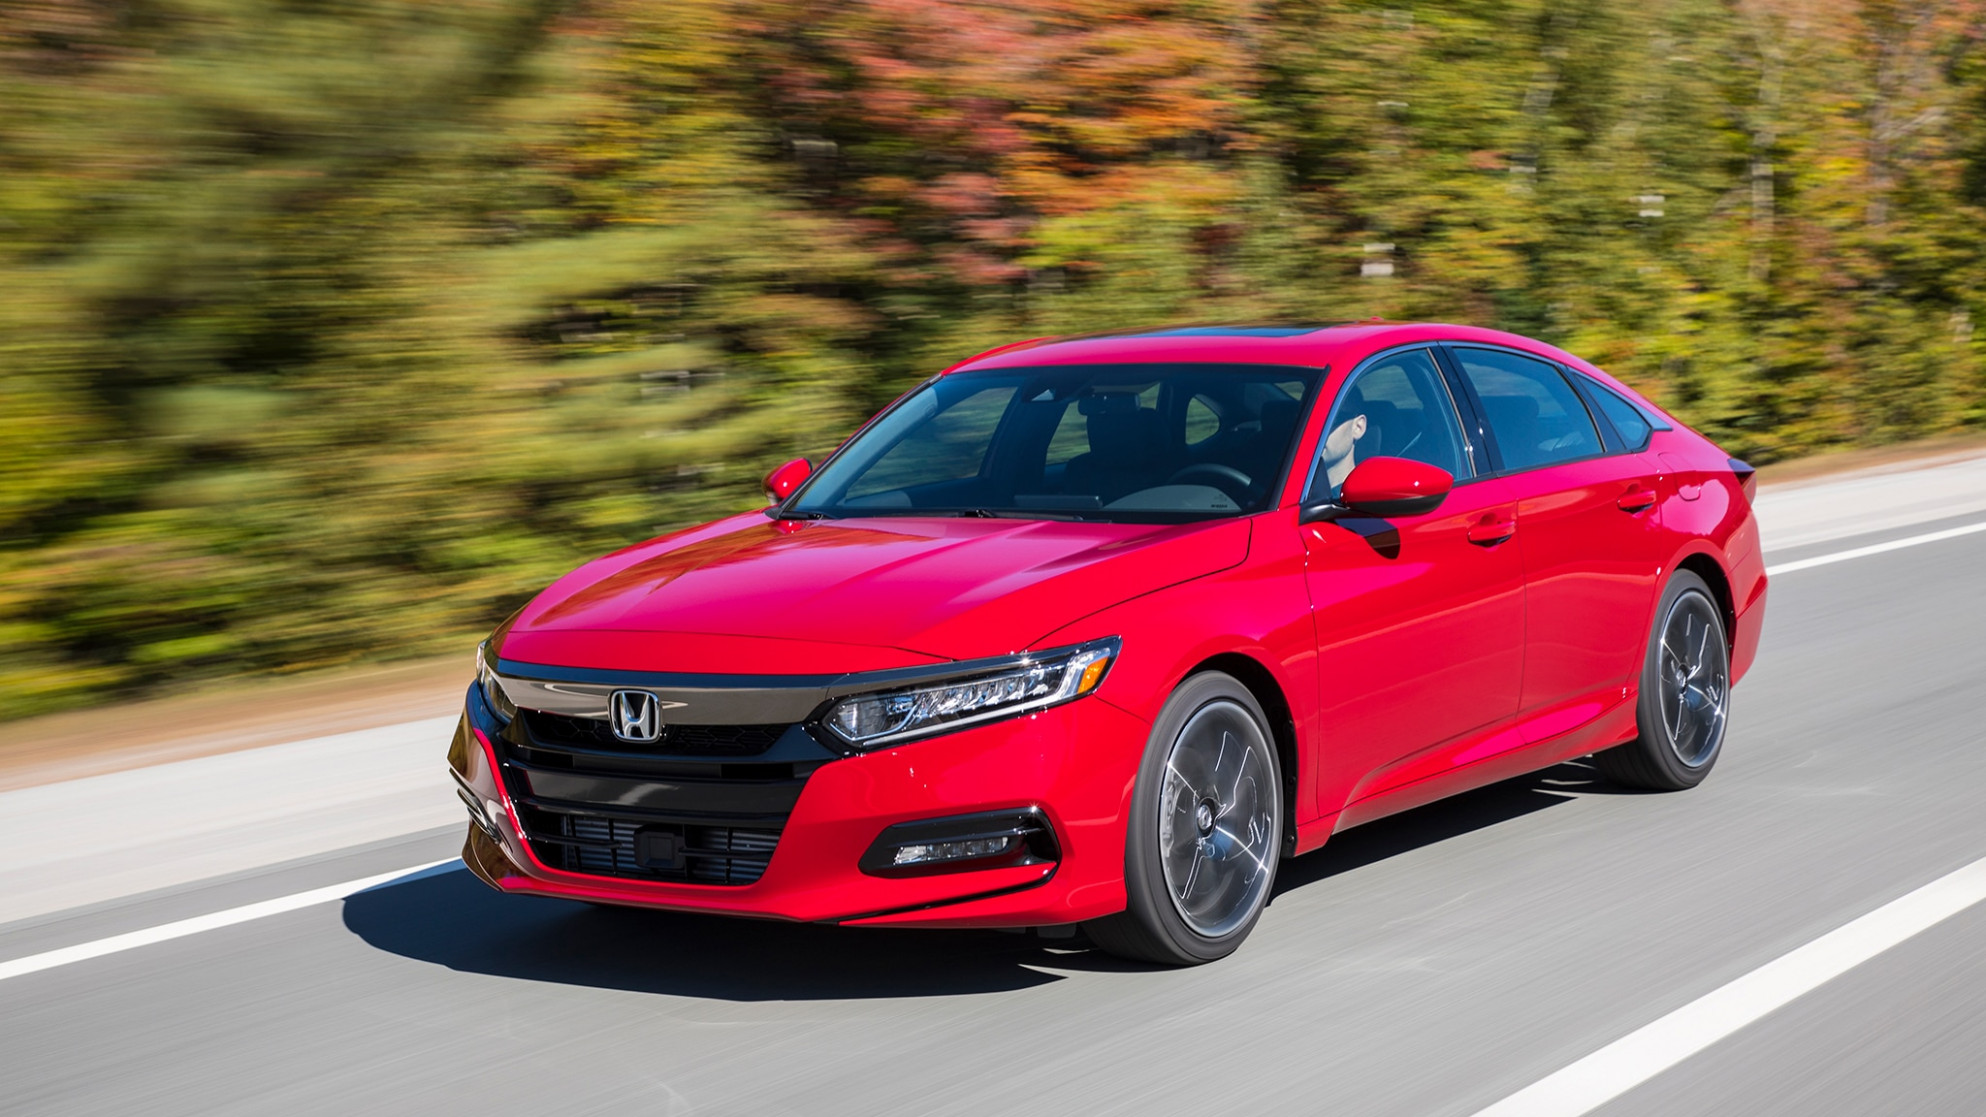 6 Honda Accord: What to Expect From the Class-Leading Midsize Sedan   2020 Honda Accord Sport